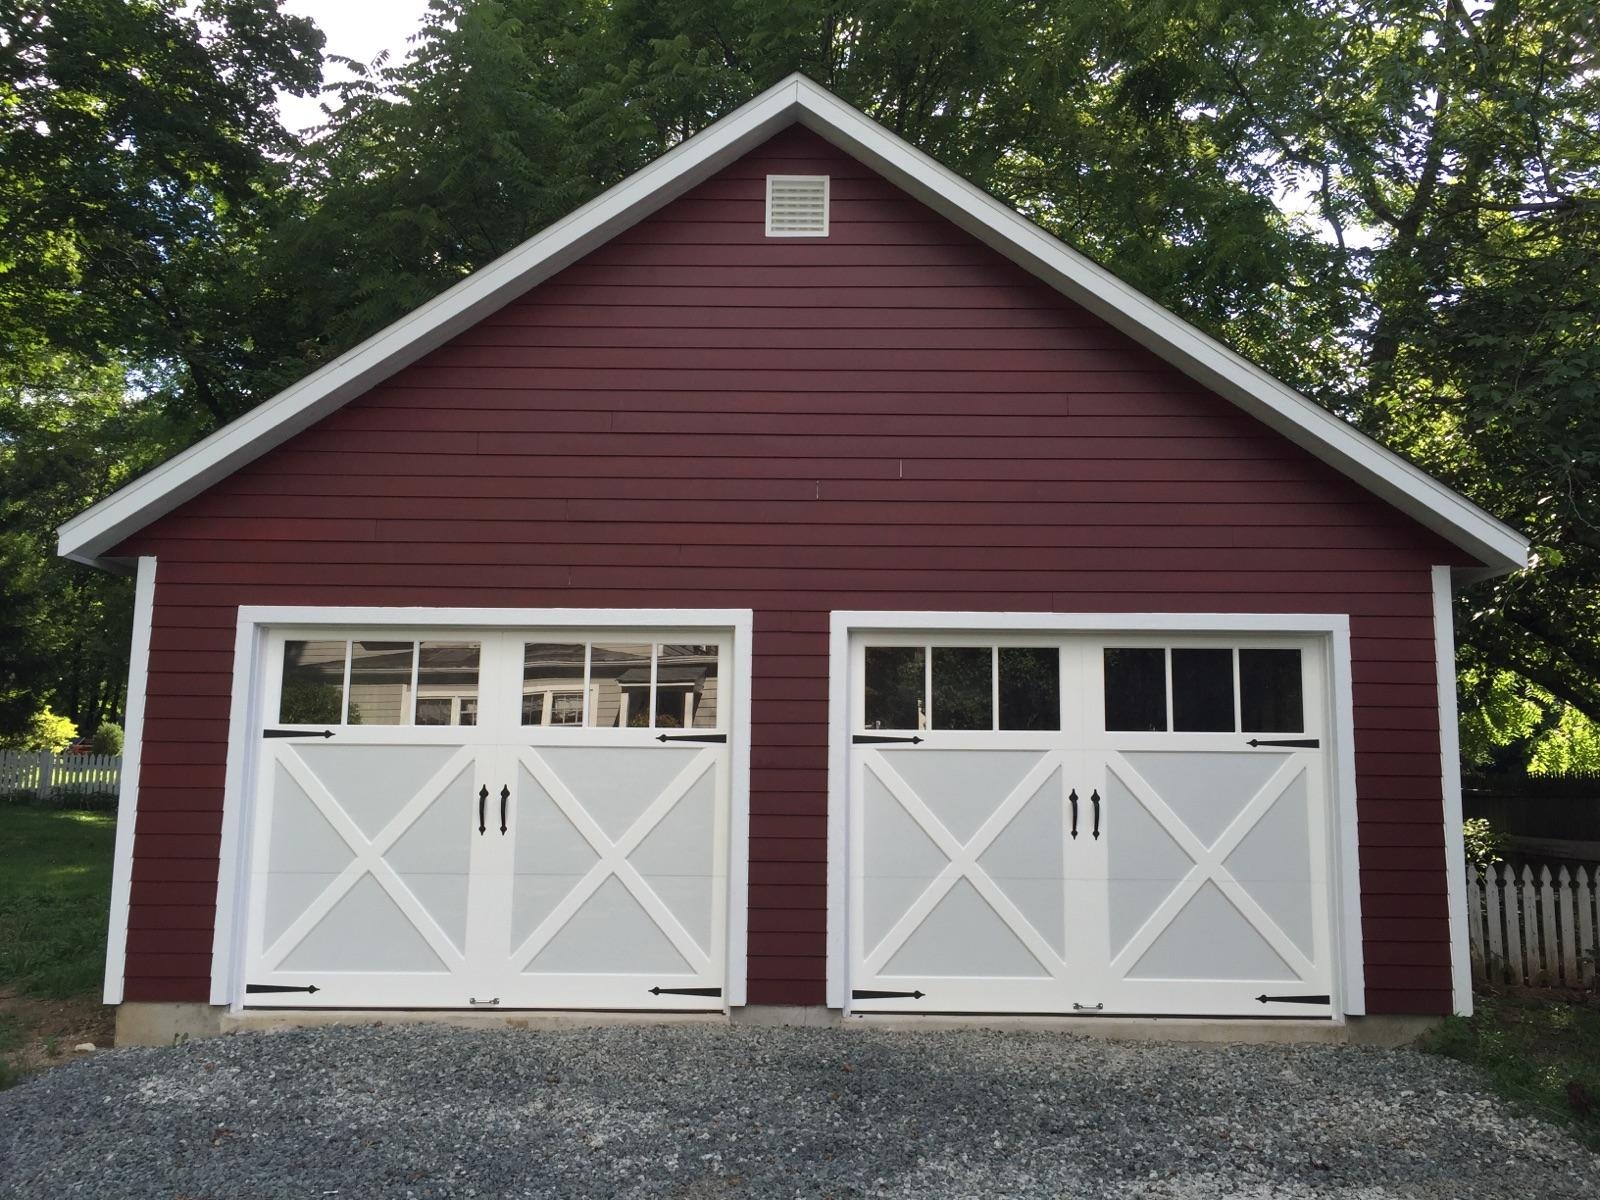 24x24-with-LP-SmarLap-Siding-CSX-Carriage-Style-garage-doors-and-8-12-attic-truss-package-2